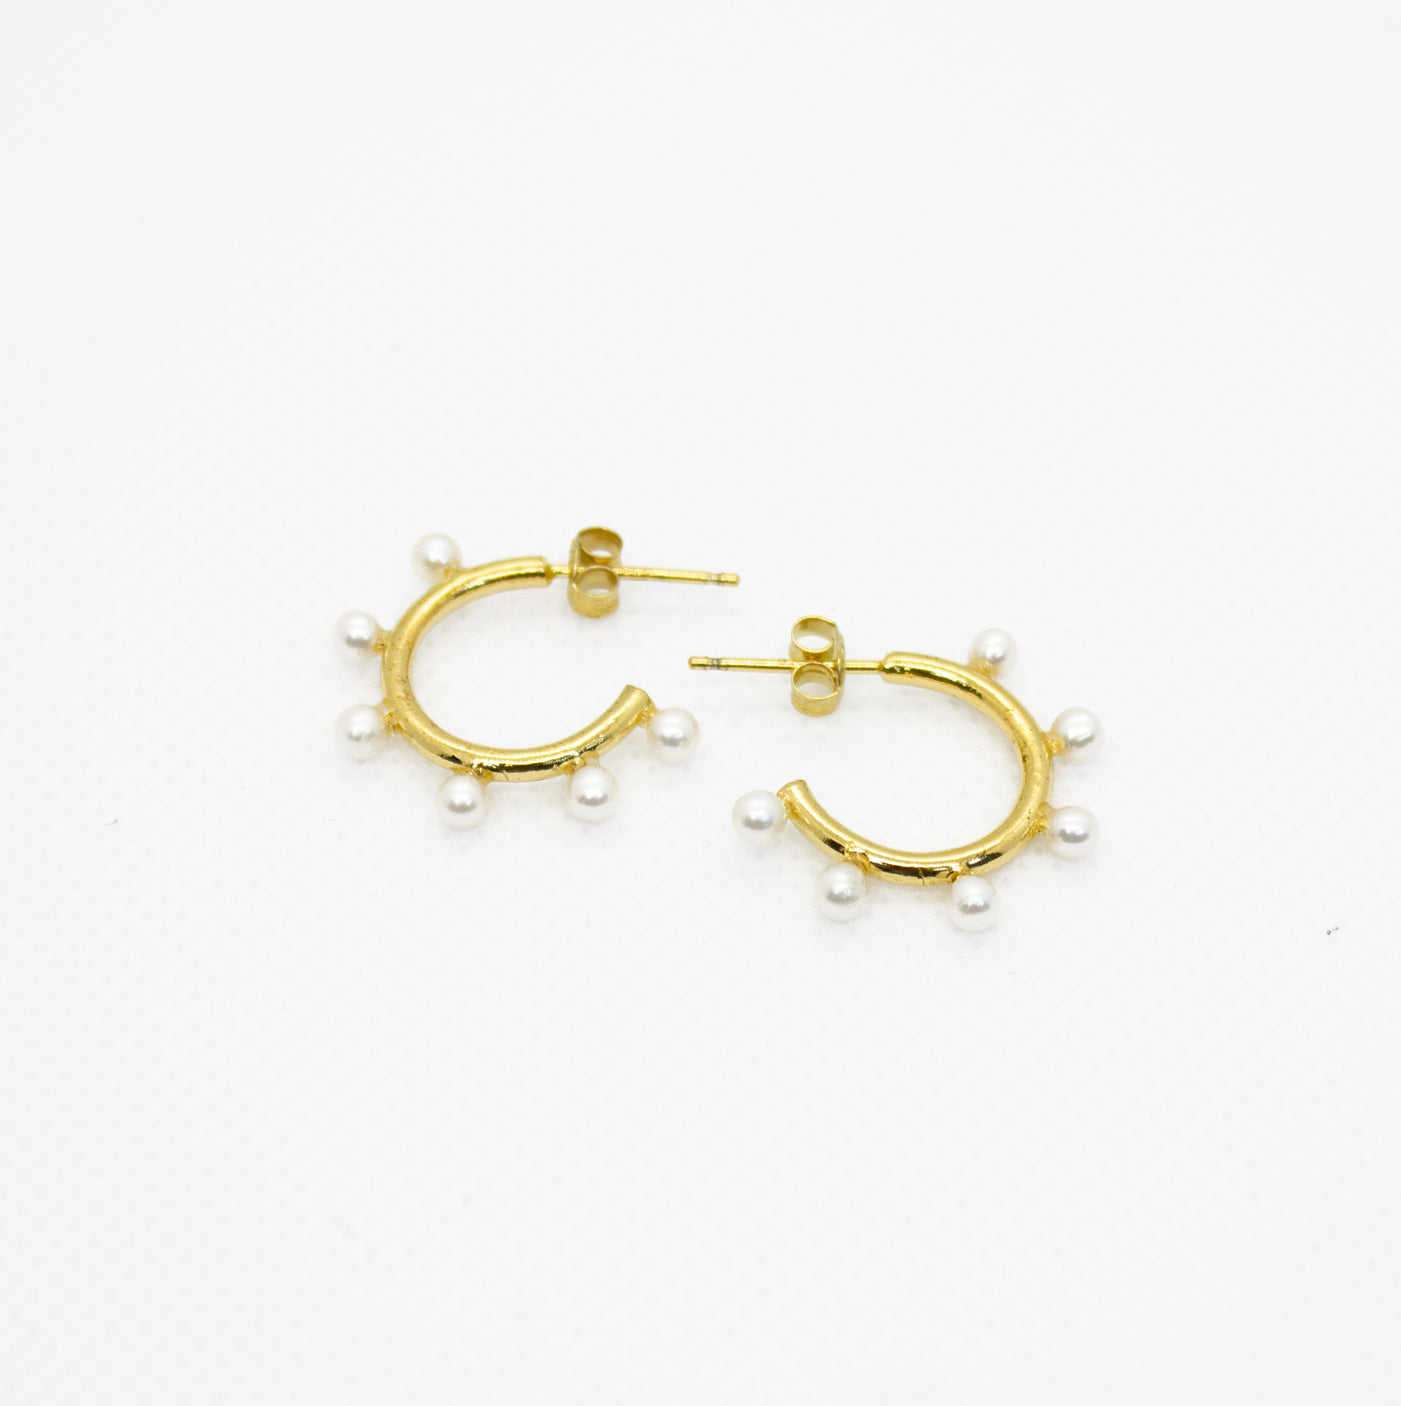 Earrings with Open Hoops with Small Pearls